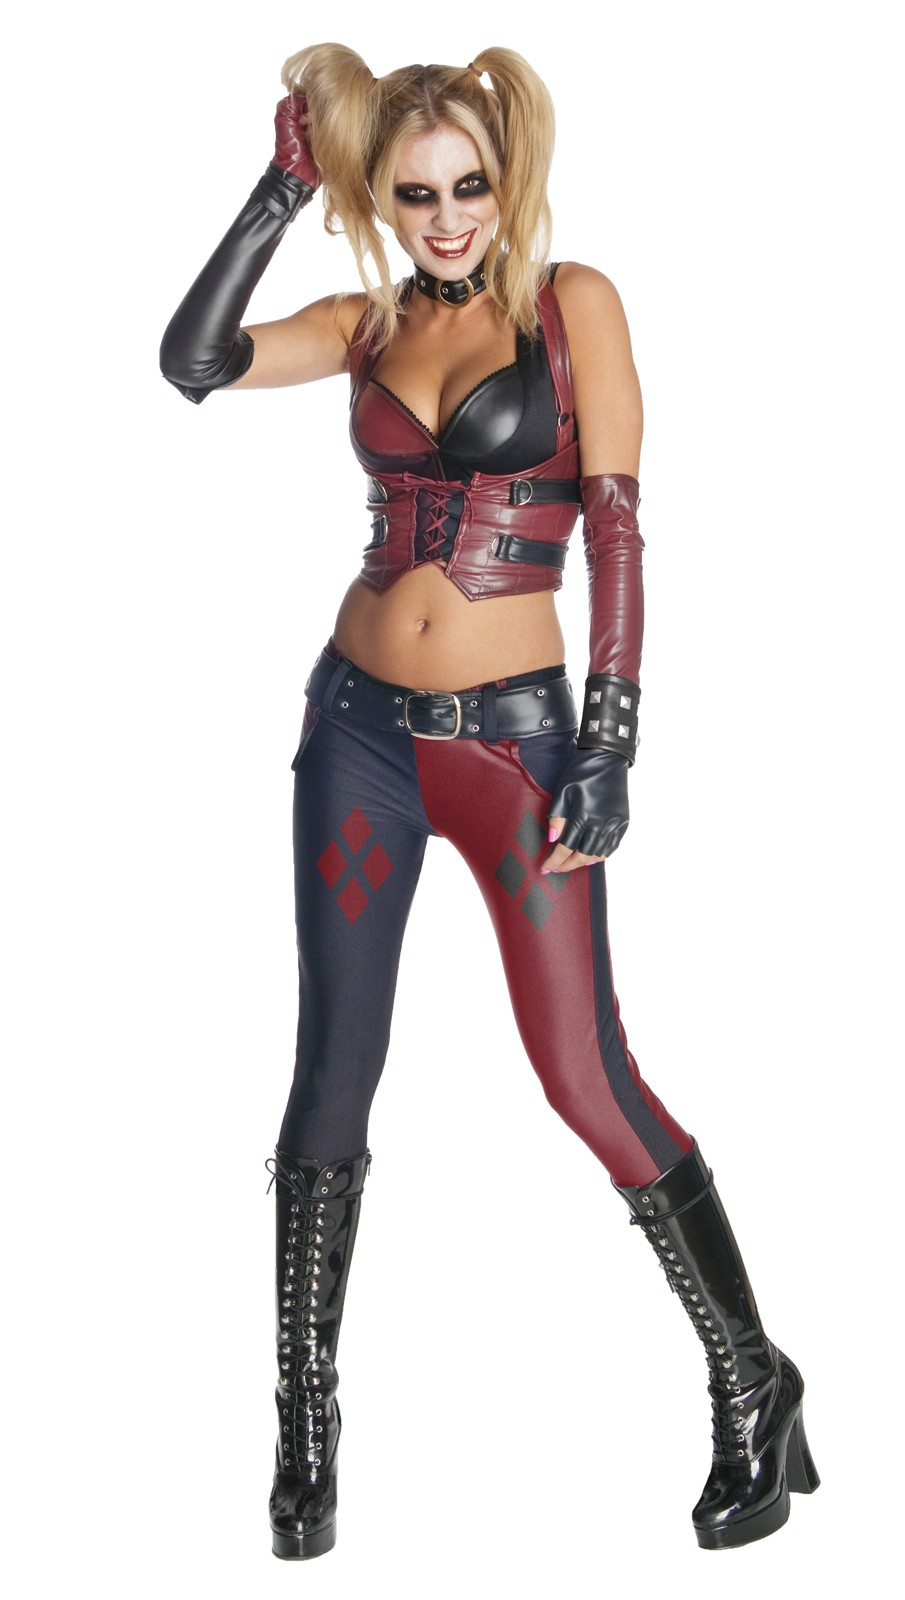 Batman Arkham City Secret Wishes Harley Quinn Adult Costume.jpg  sc 1 st  Costumes.com.au & Batman Arkham City Secret Wishes Harley Quinn Adult Costume ...